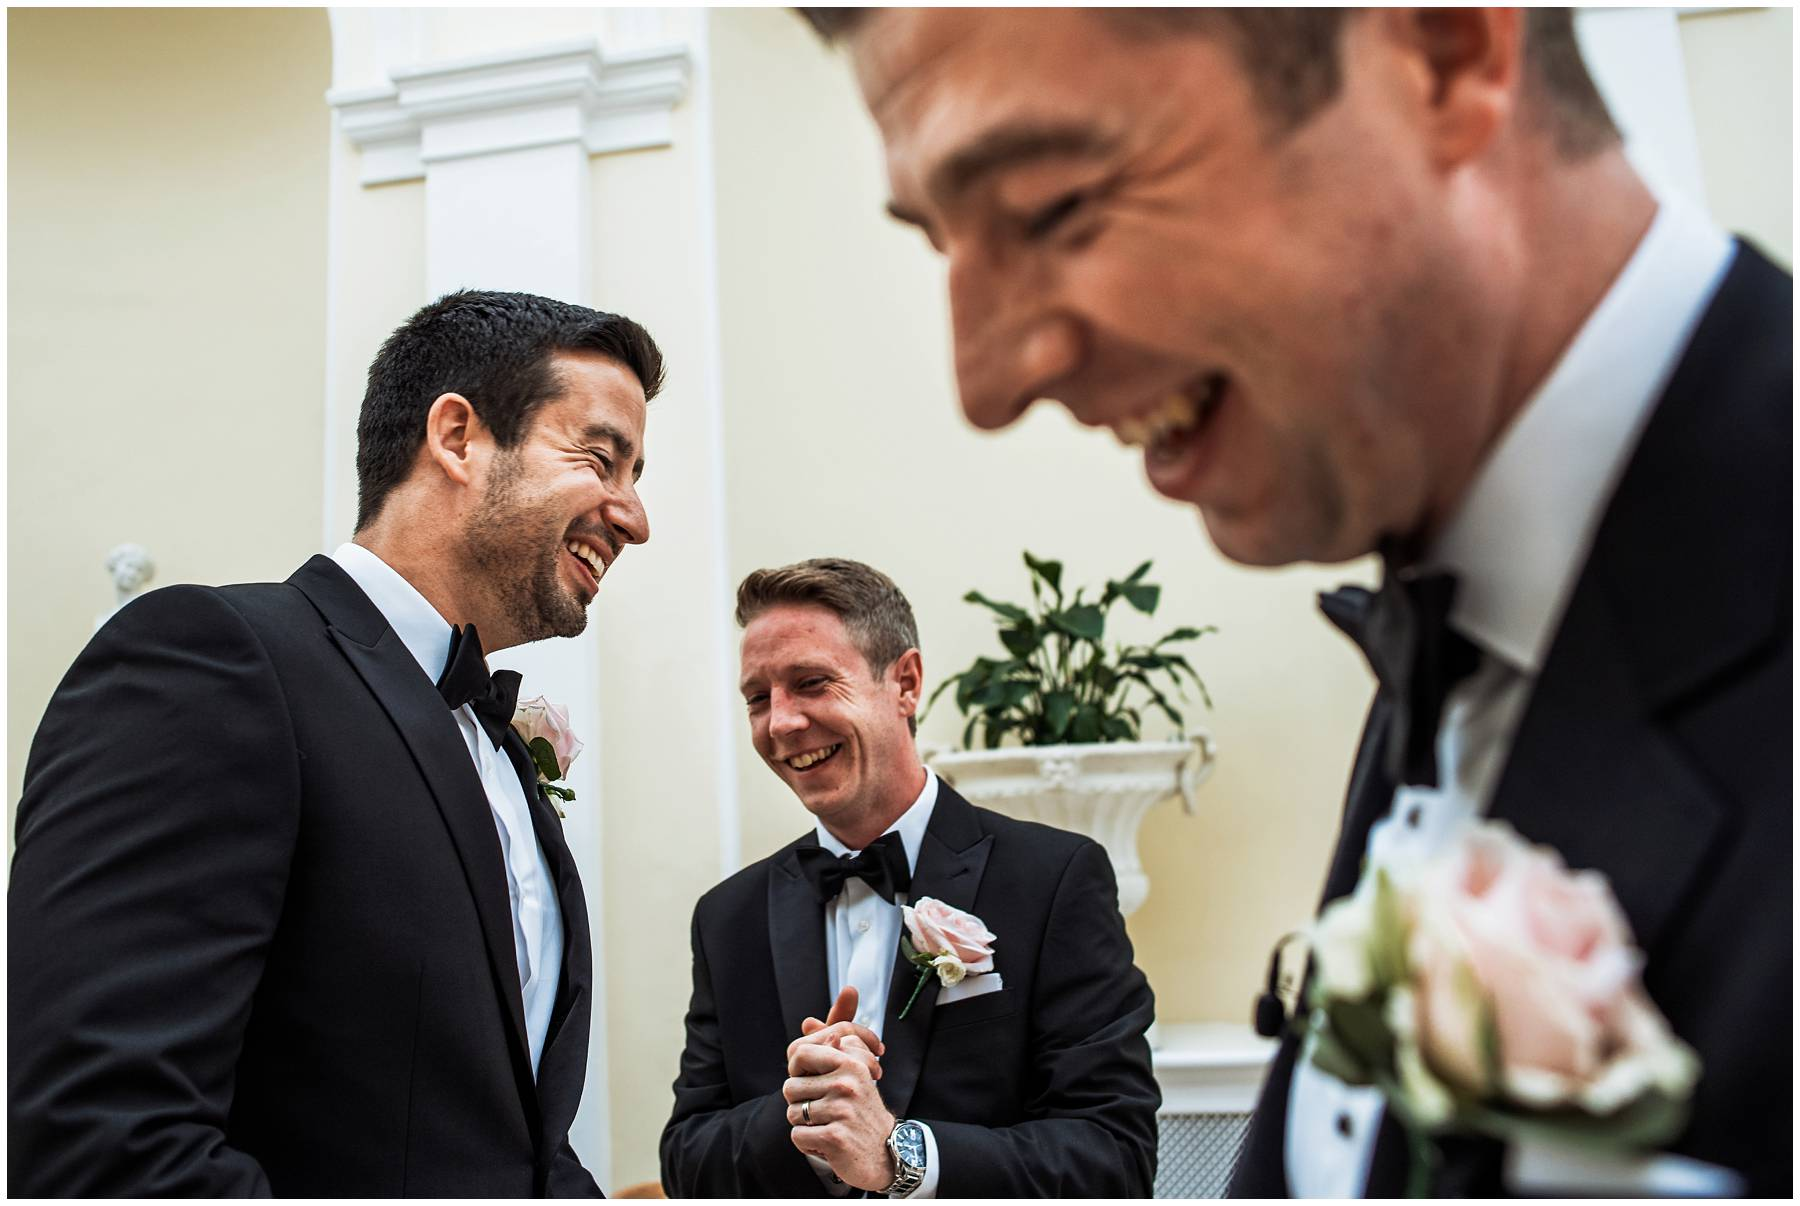 Groomsmen at Blenheim Palace Wedding